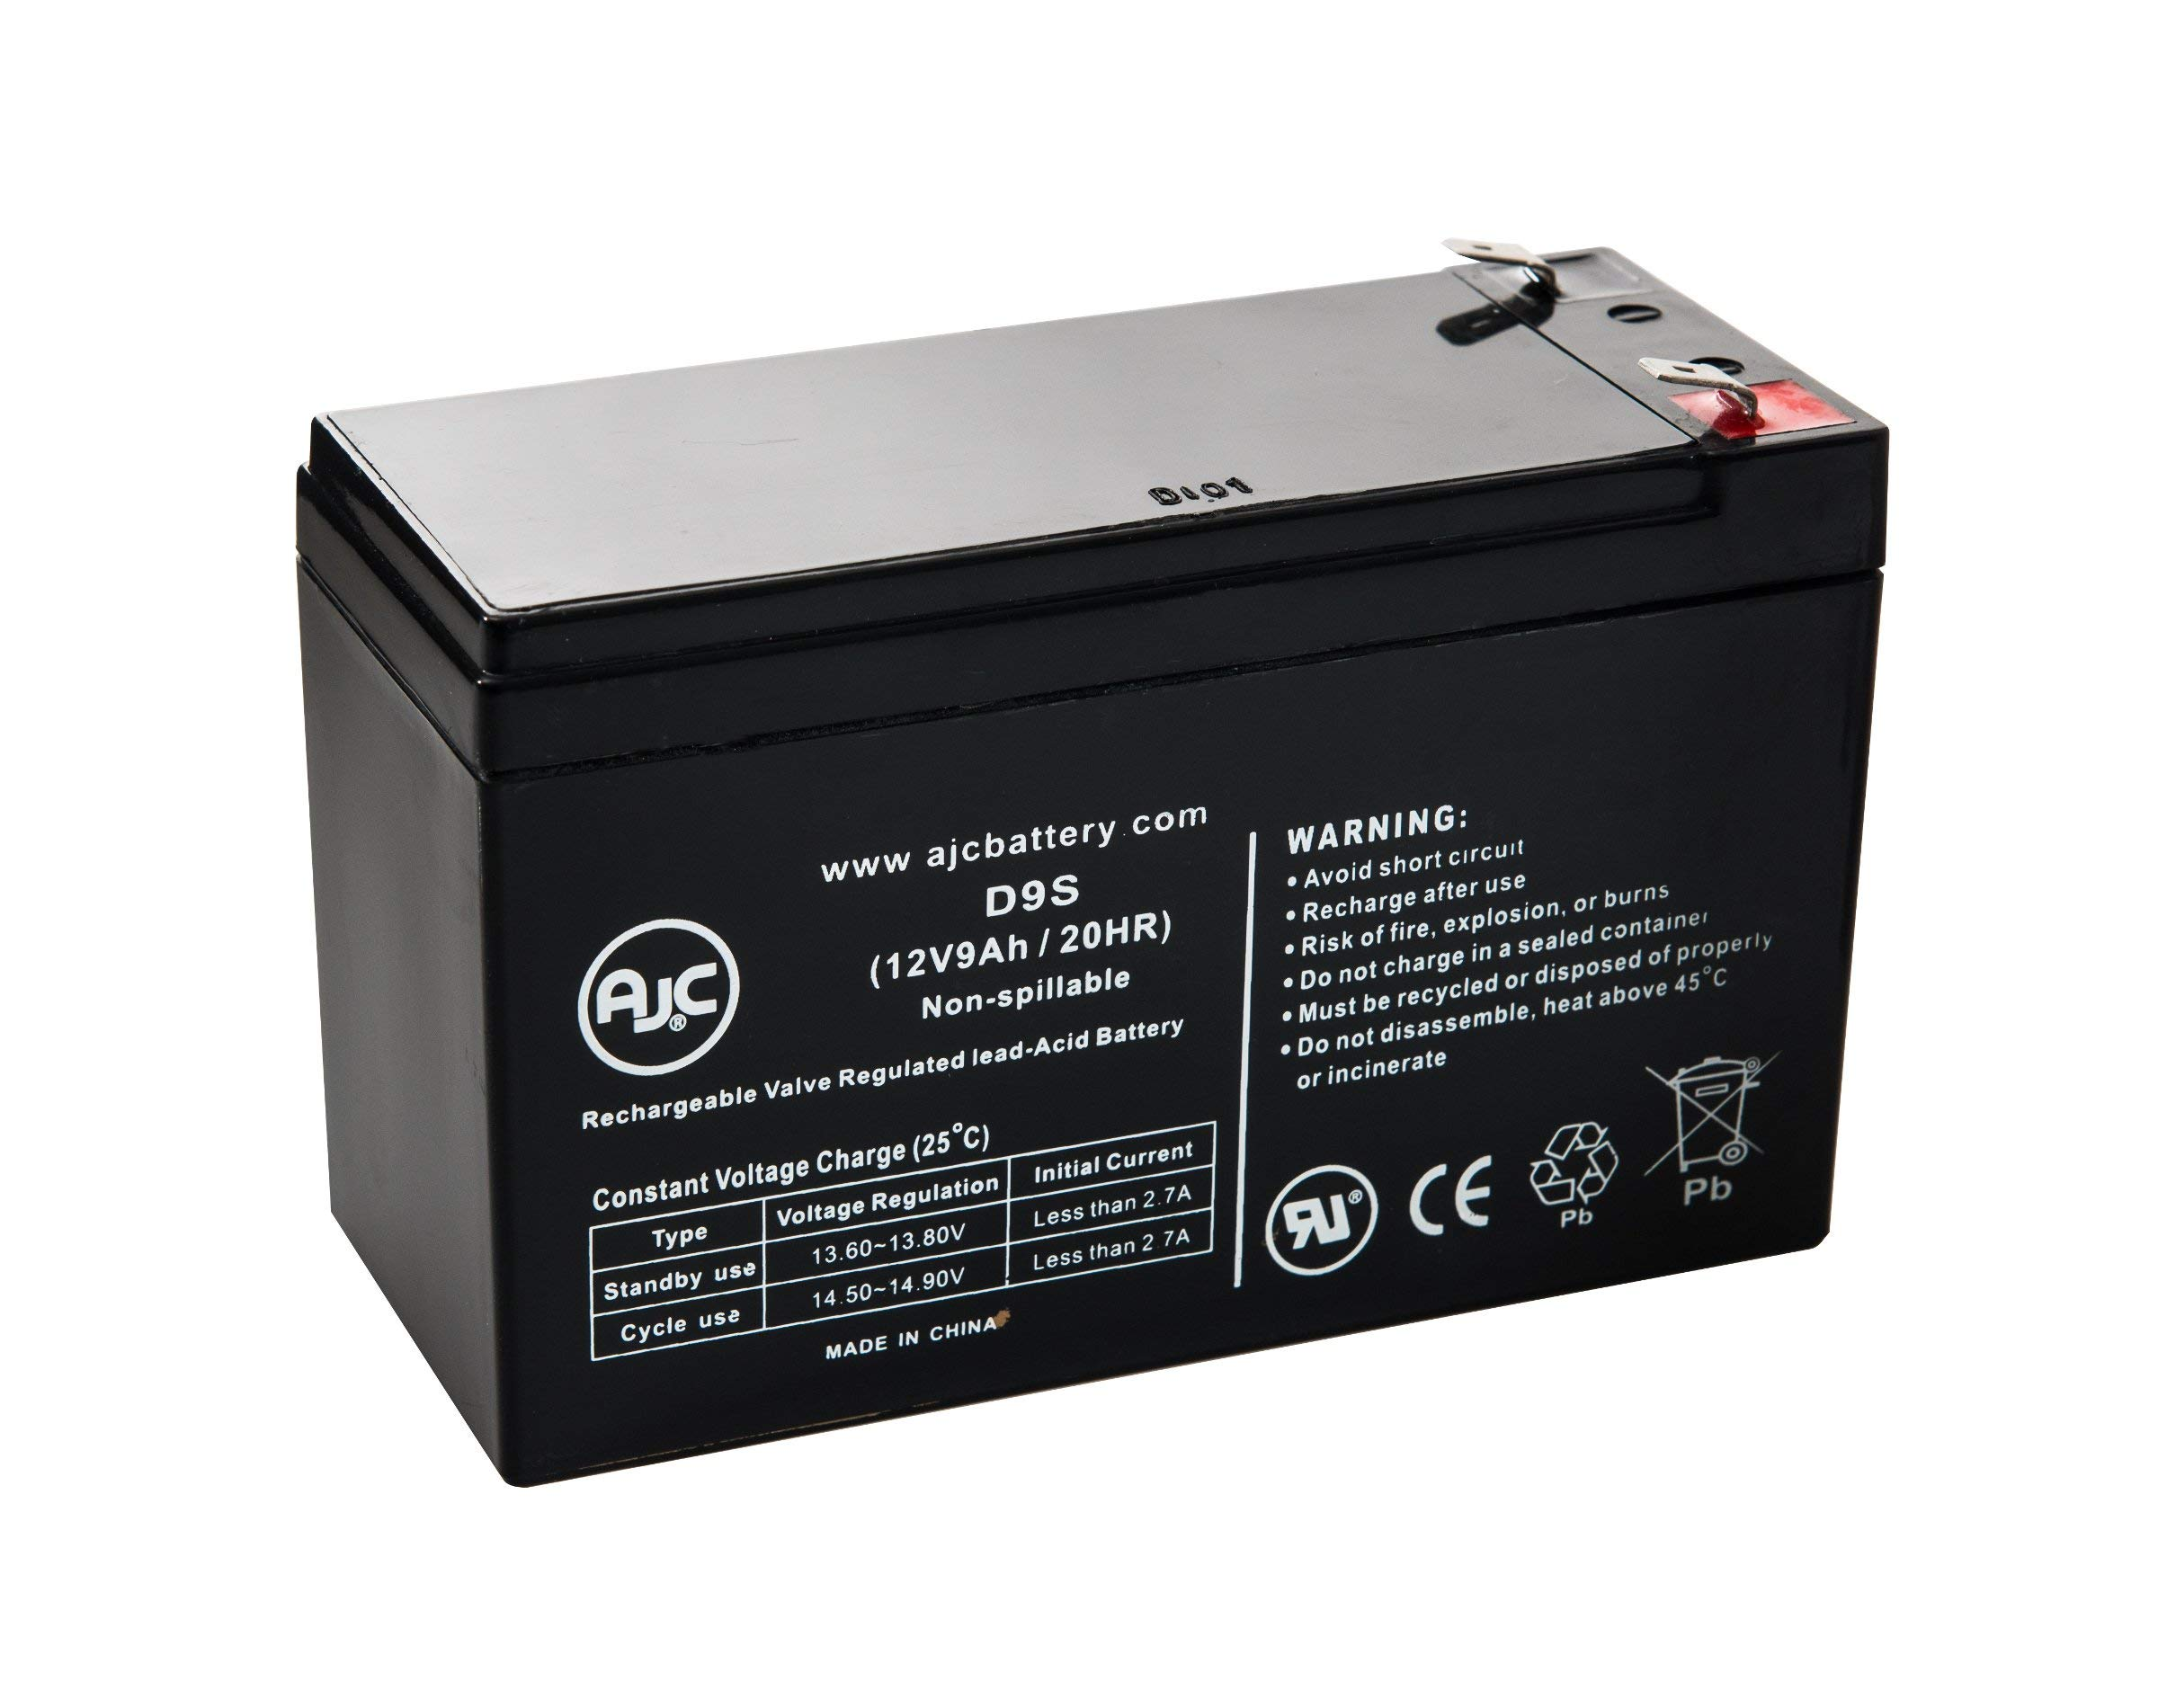 Merits Travel-Ease Regal P120 / P1201 / P12011 / P12012 12V 9Ah Wheelchair and Mobility Battery - This is an AJC Brand Replacement